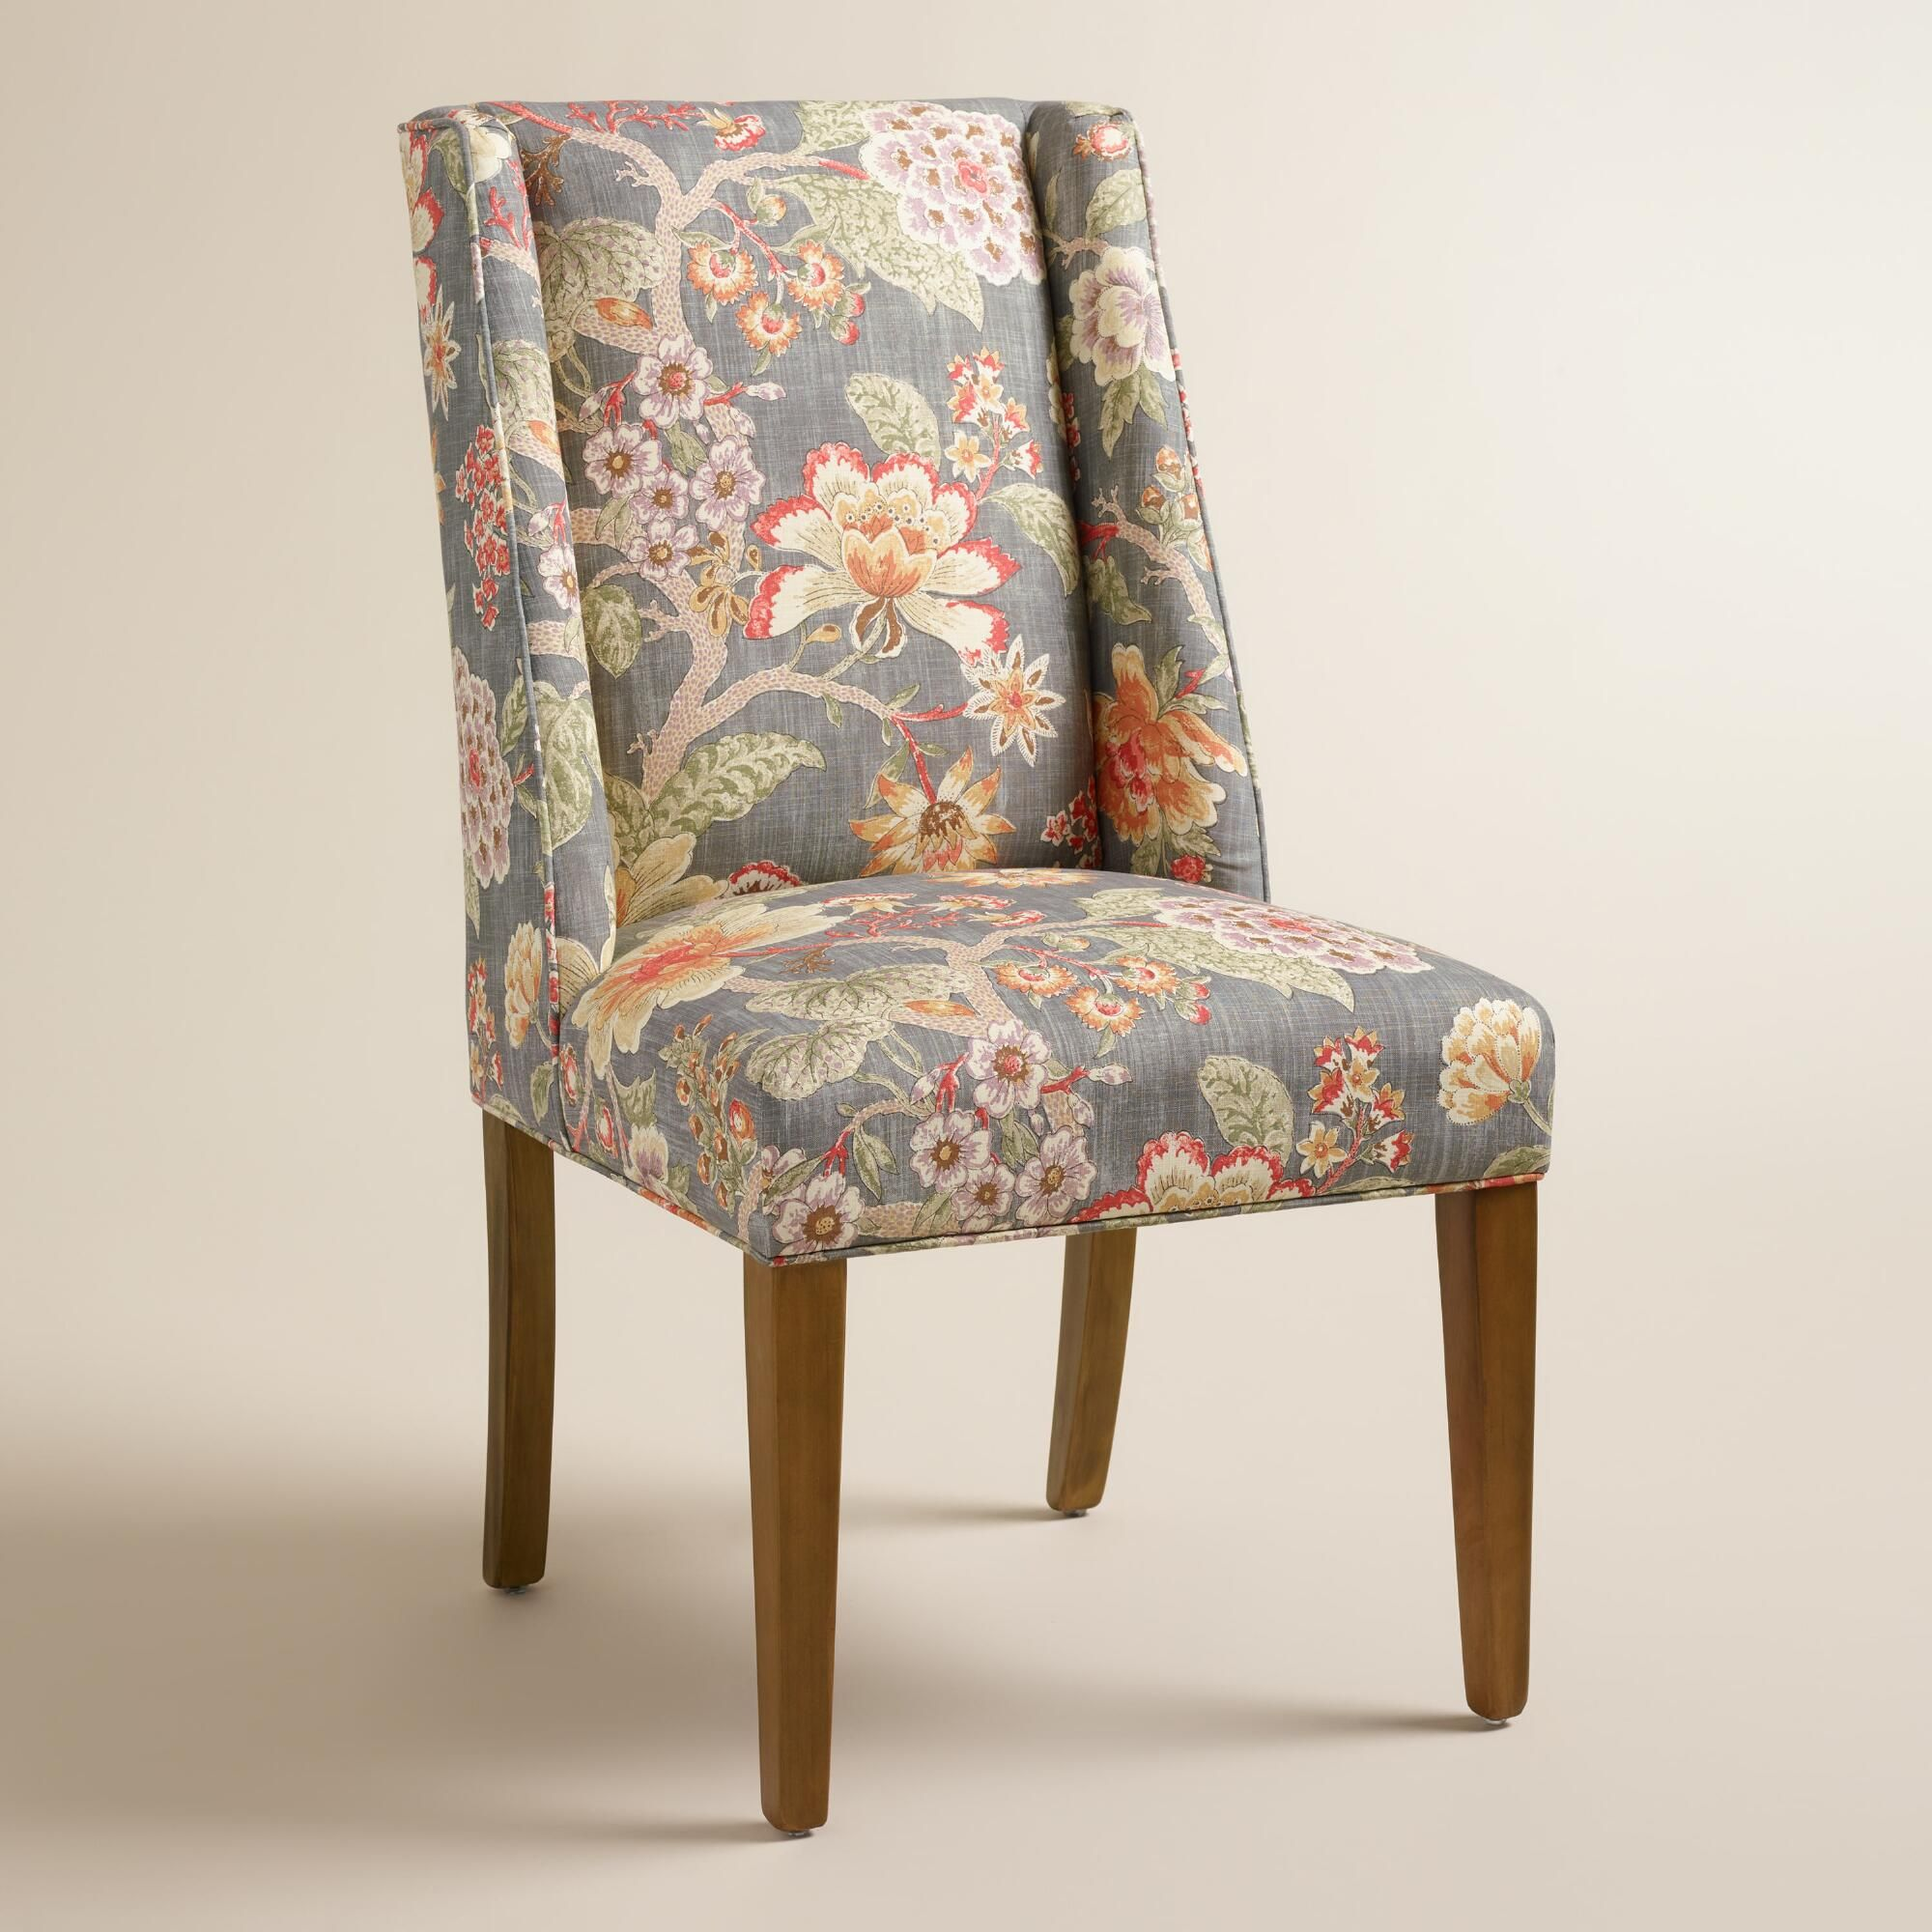 Floral Dining Room Chairs: With A Warm-hued Floral Motif And Subtle Wingback Profile